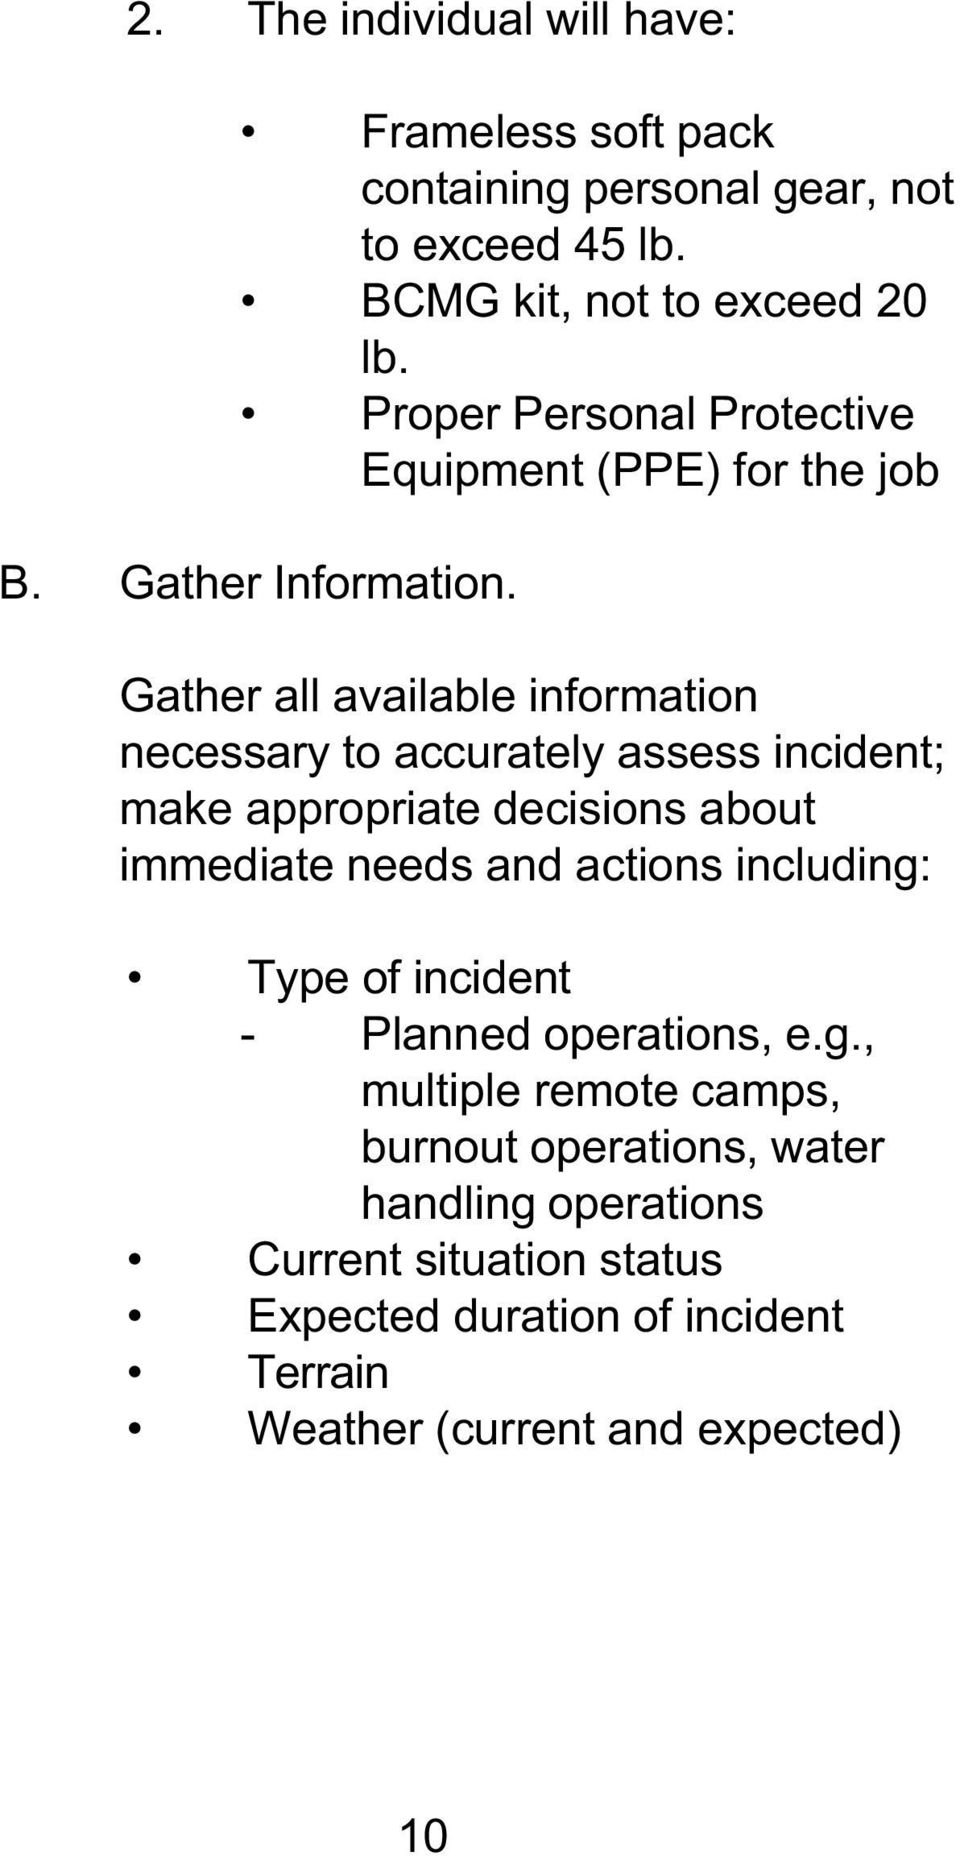 Gather all available information necessary to accurately assess incident; make appropriate decisions about immediate needs and actions